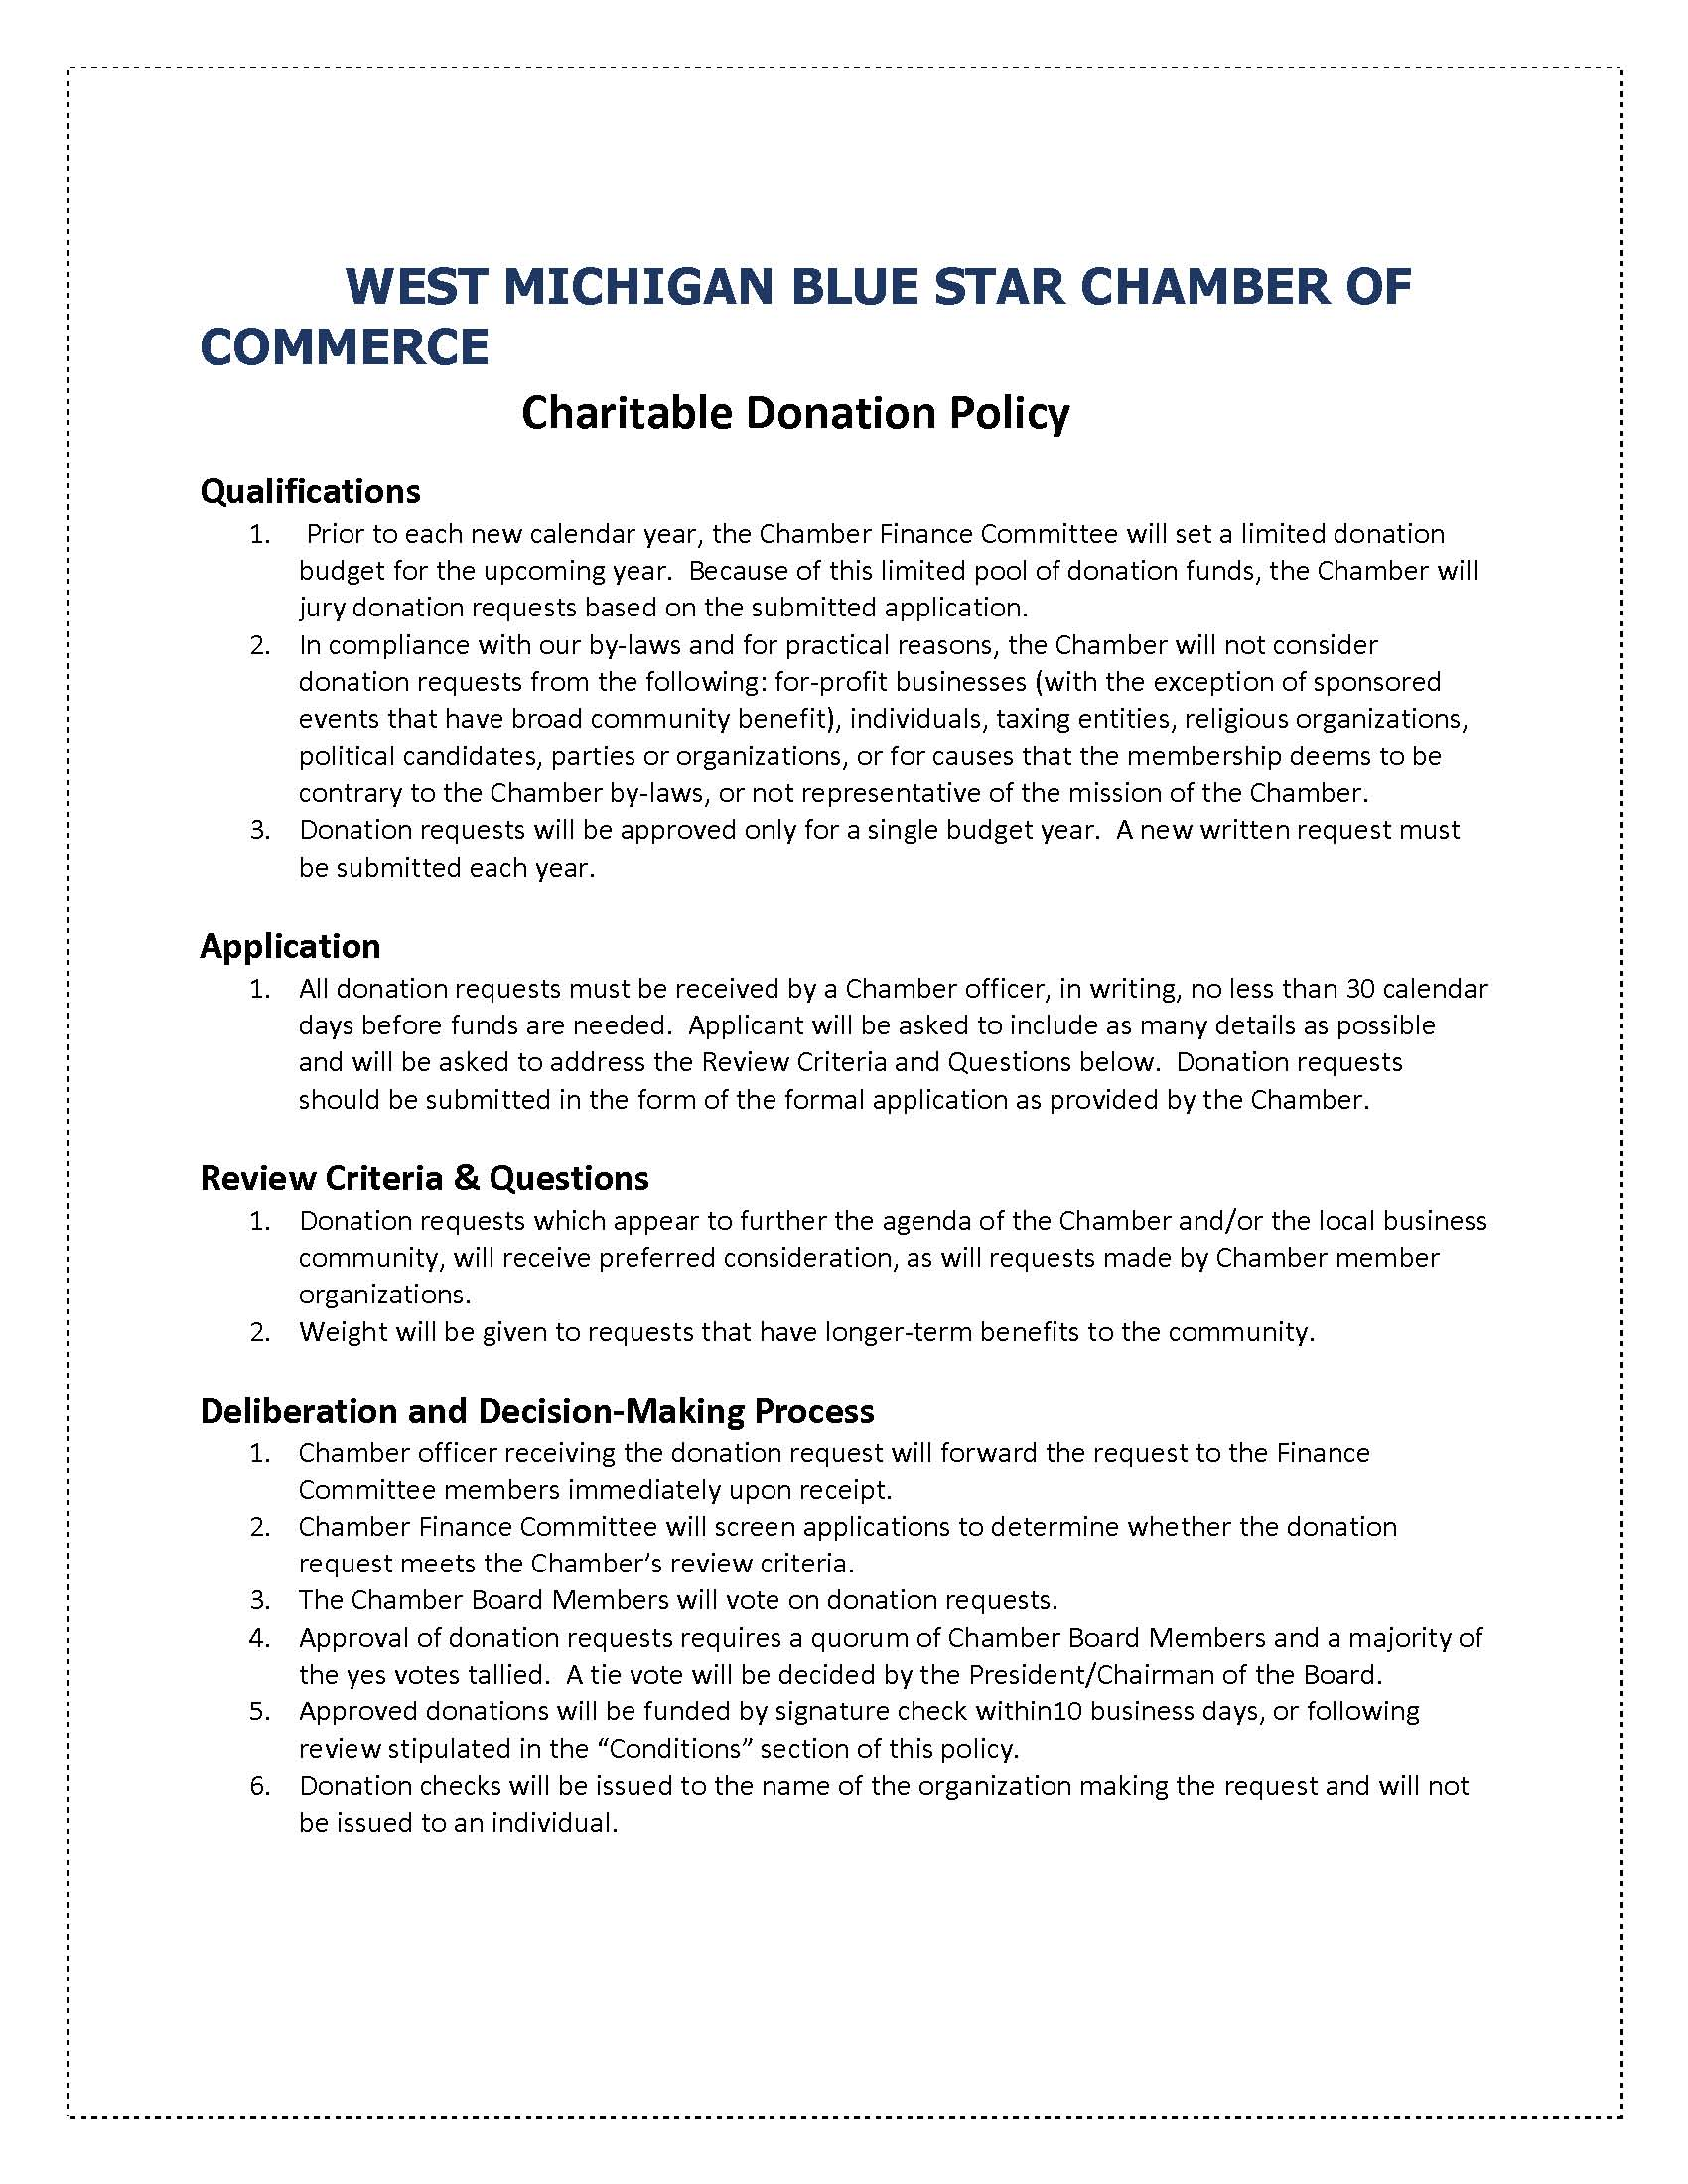 WEST MICHIGAN BLUE STAR CHAMBER OF COMMERCE Donor Policy.jpg